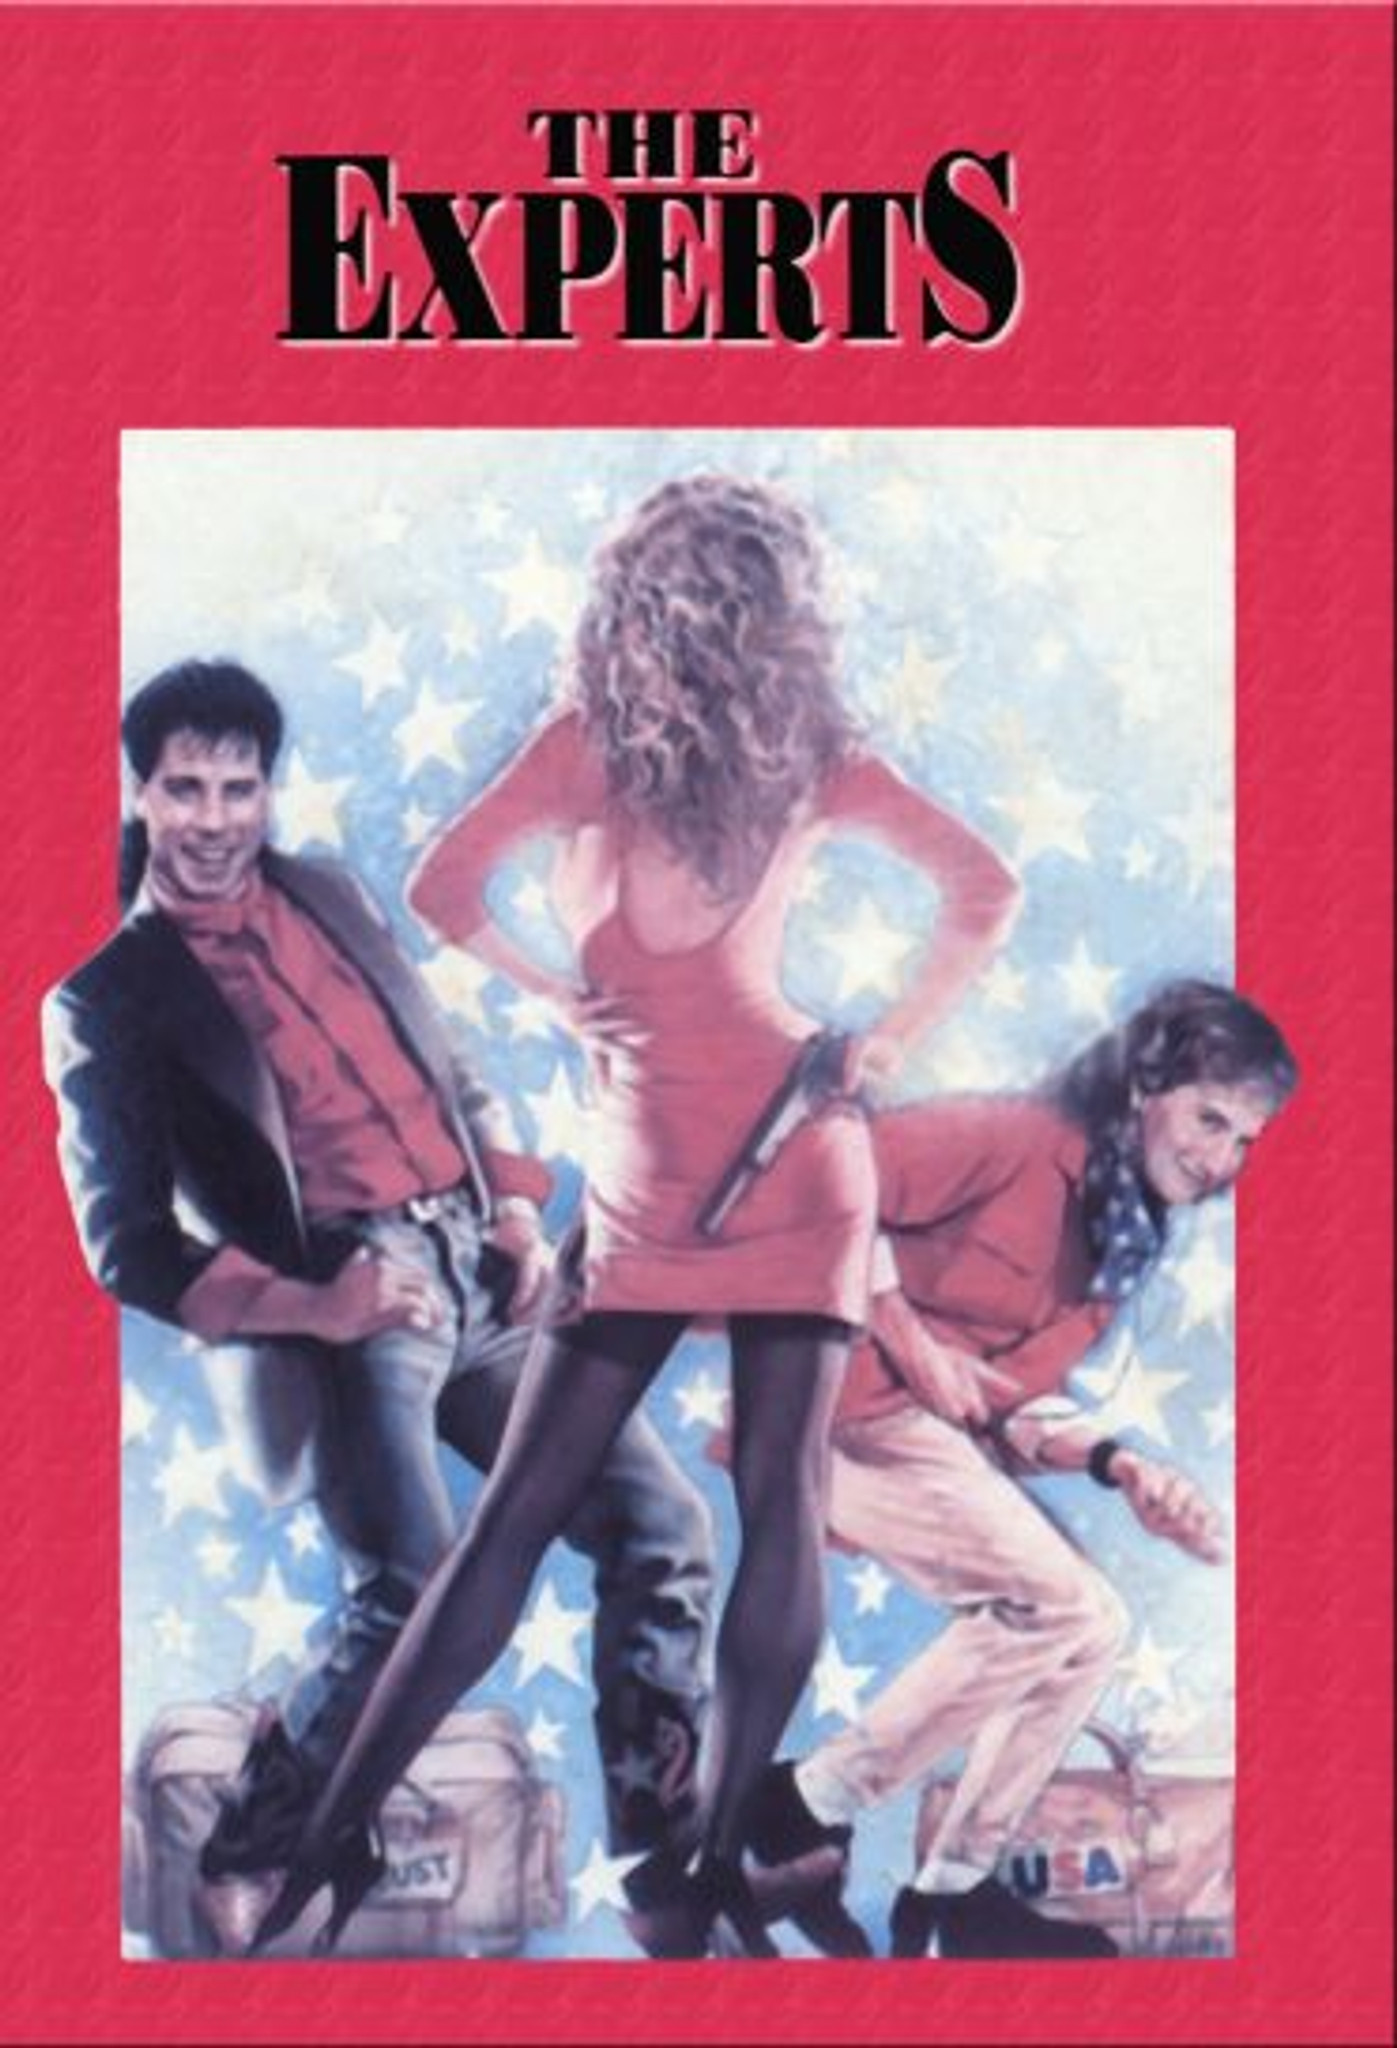 The Experts DVD